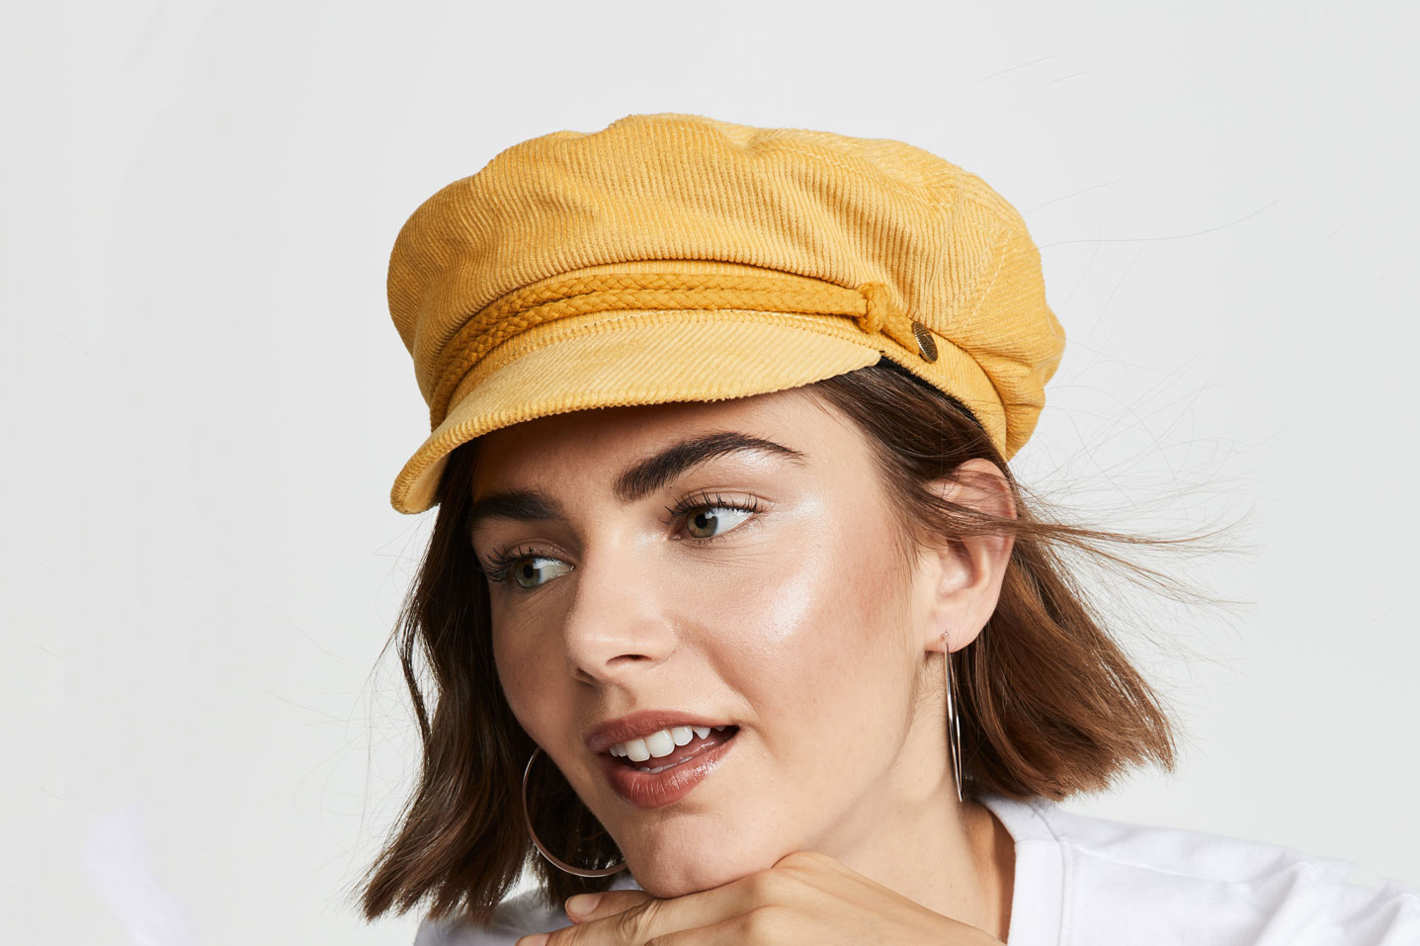 bde781a5b53 15 Women on Ways to Wear Hats This Winter